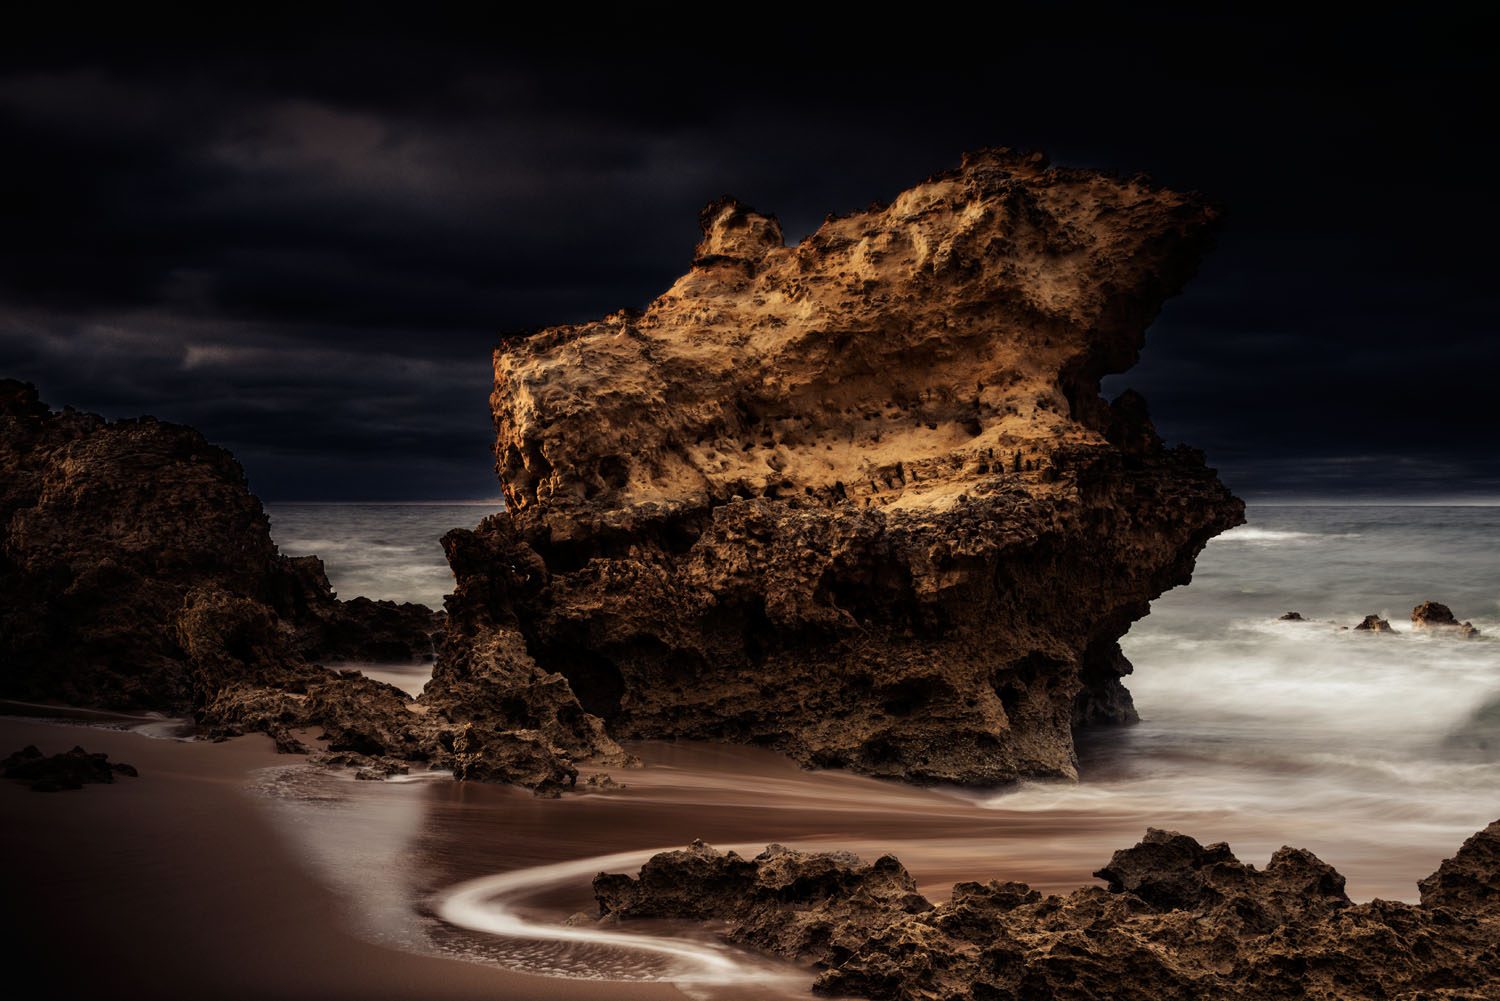 A rock formation on the beach at Jan Jac. I can get there in about one and half hours.